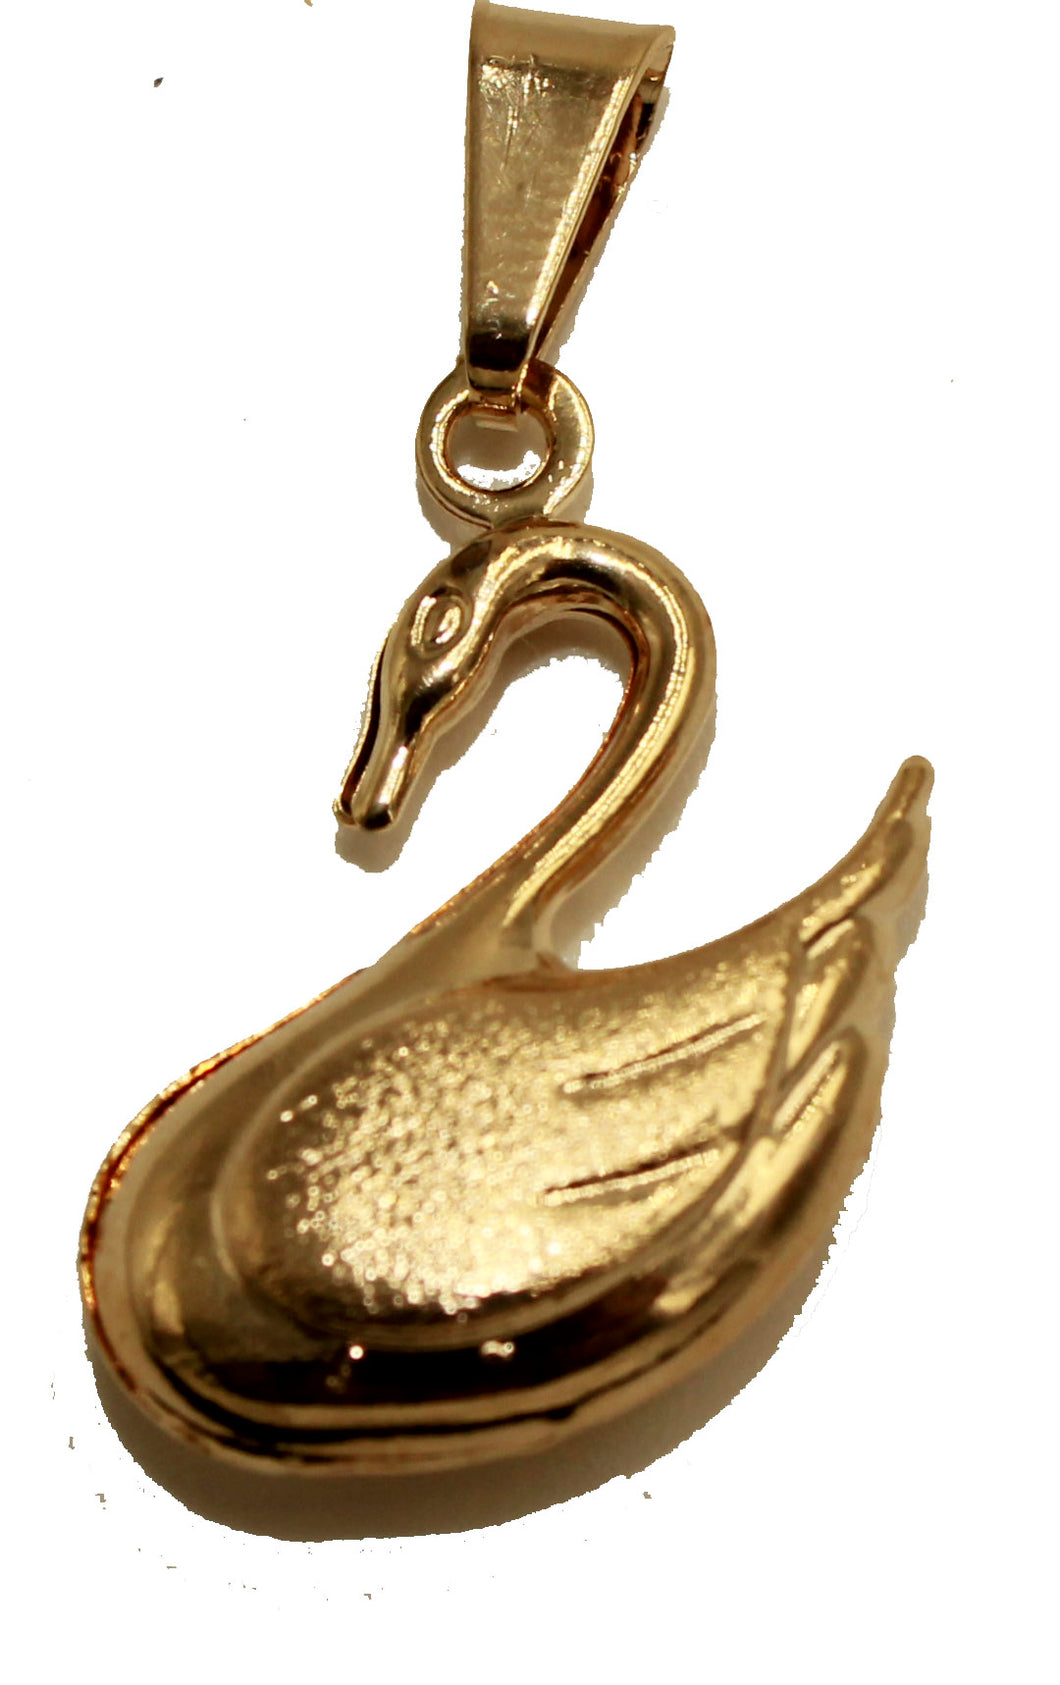 Swan 18k Gold Plated Pendant with 20 inch Chain - Majestic Swan Necklace